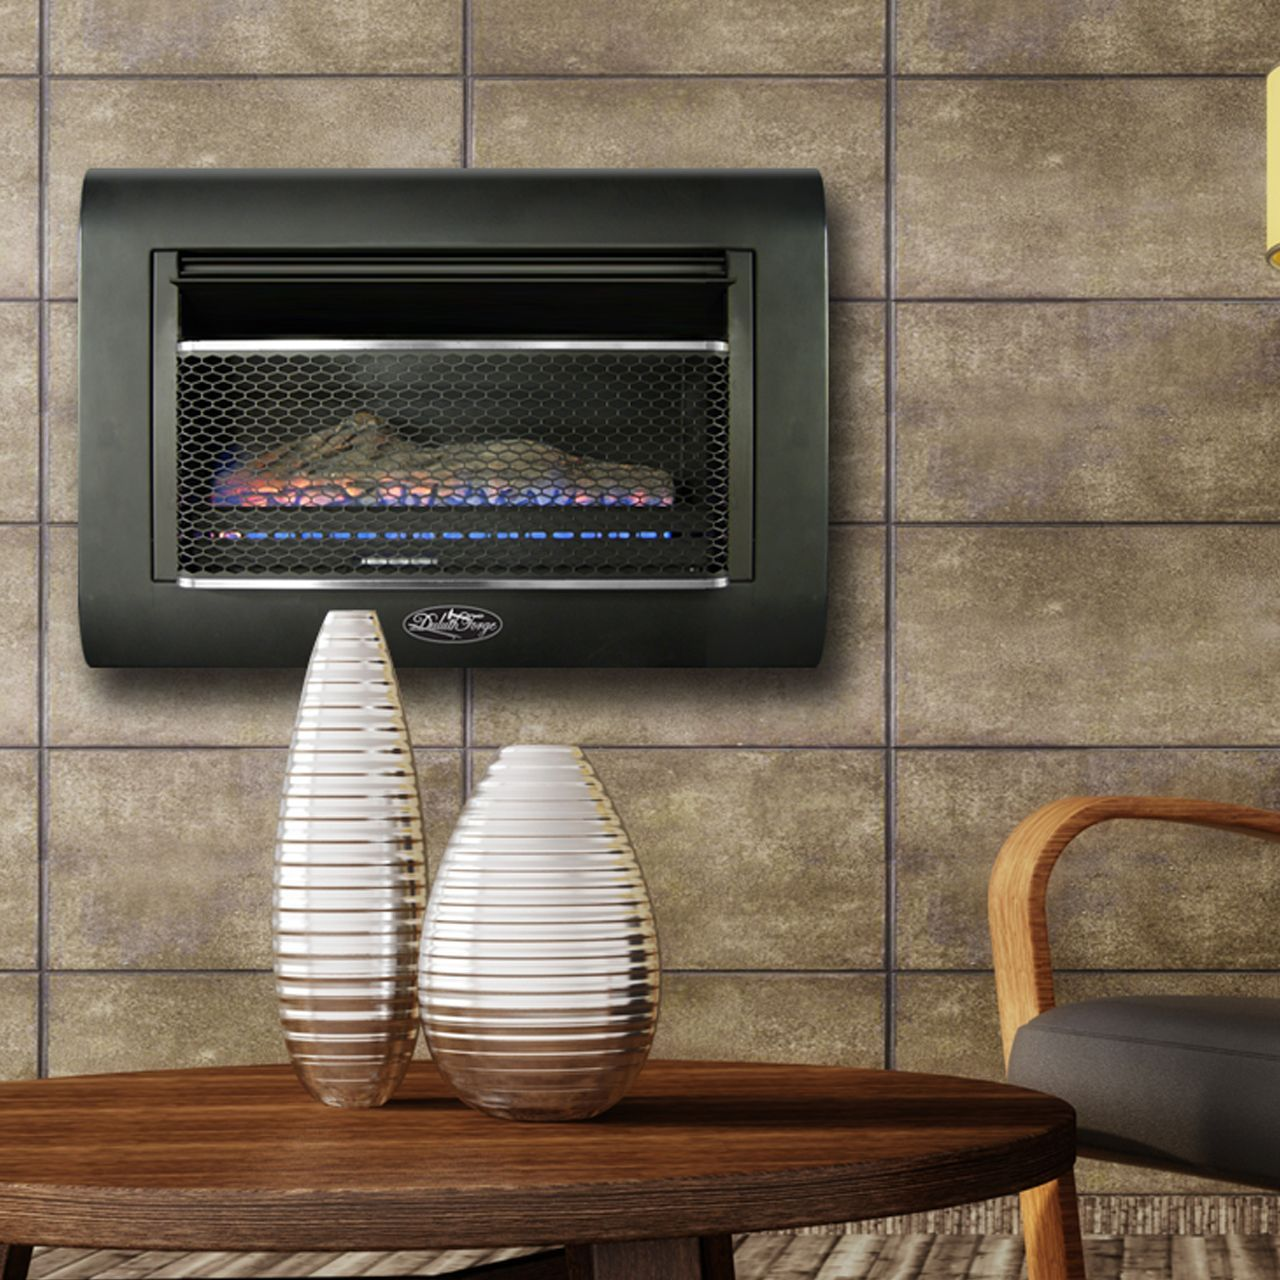 Check Out This New Wall Gas Fireplace From Duluth Forge